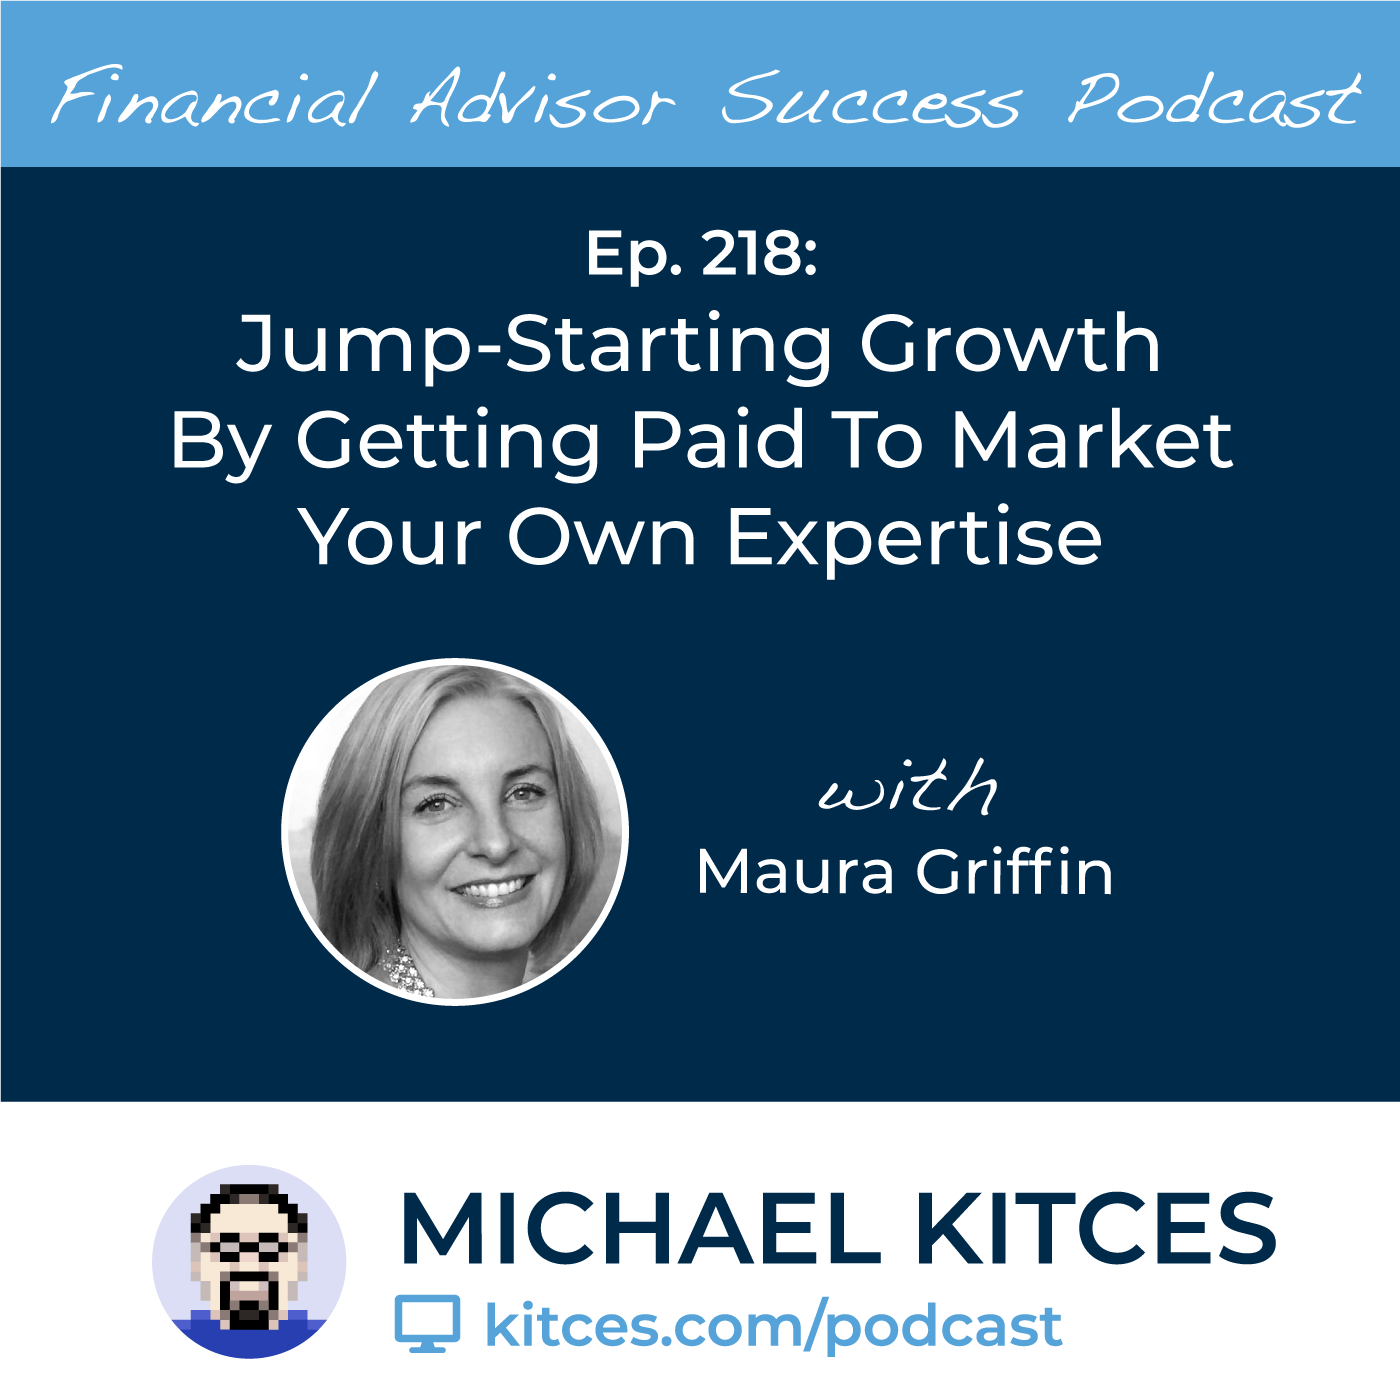 Ep 218: Jumpstarting Growth By Getting Paid To Market Your Own Expertise with Maura Griffin